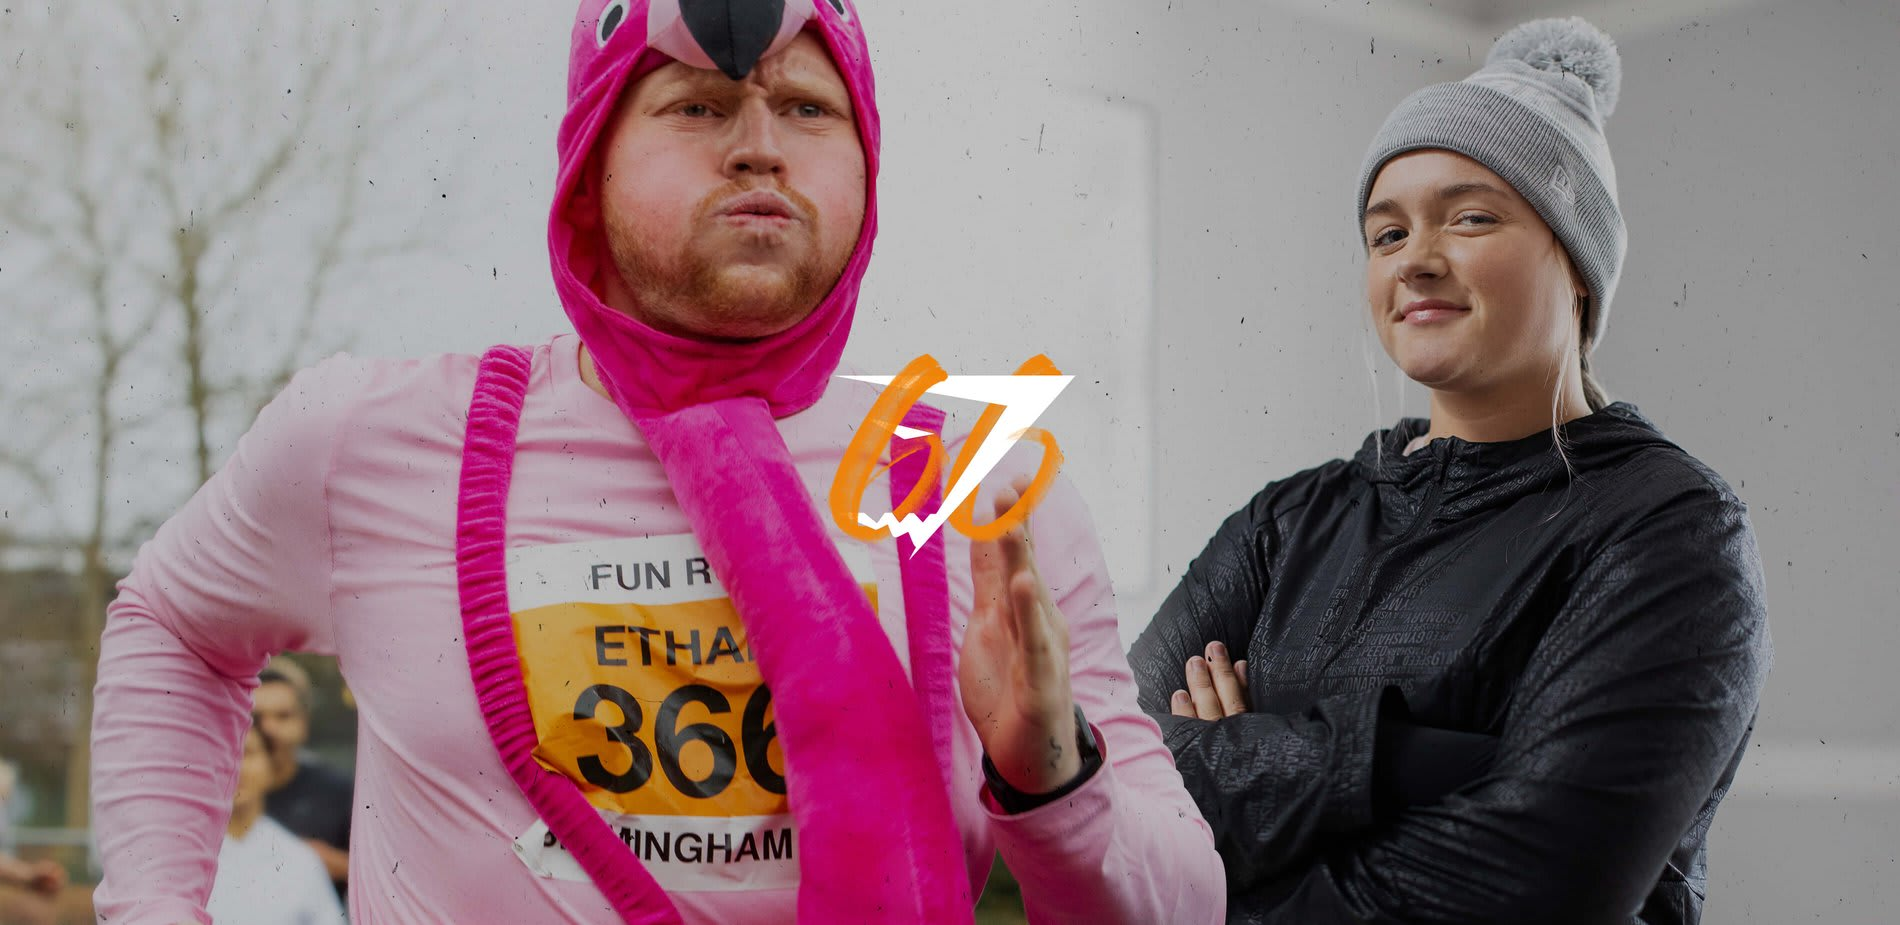 Man running marathon in flamingo outfit looking tired. Women with arms folded looking happy with herself. Gymshark 66 logo in the centre of image.